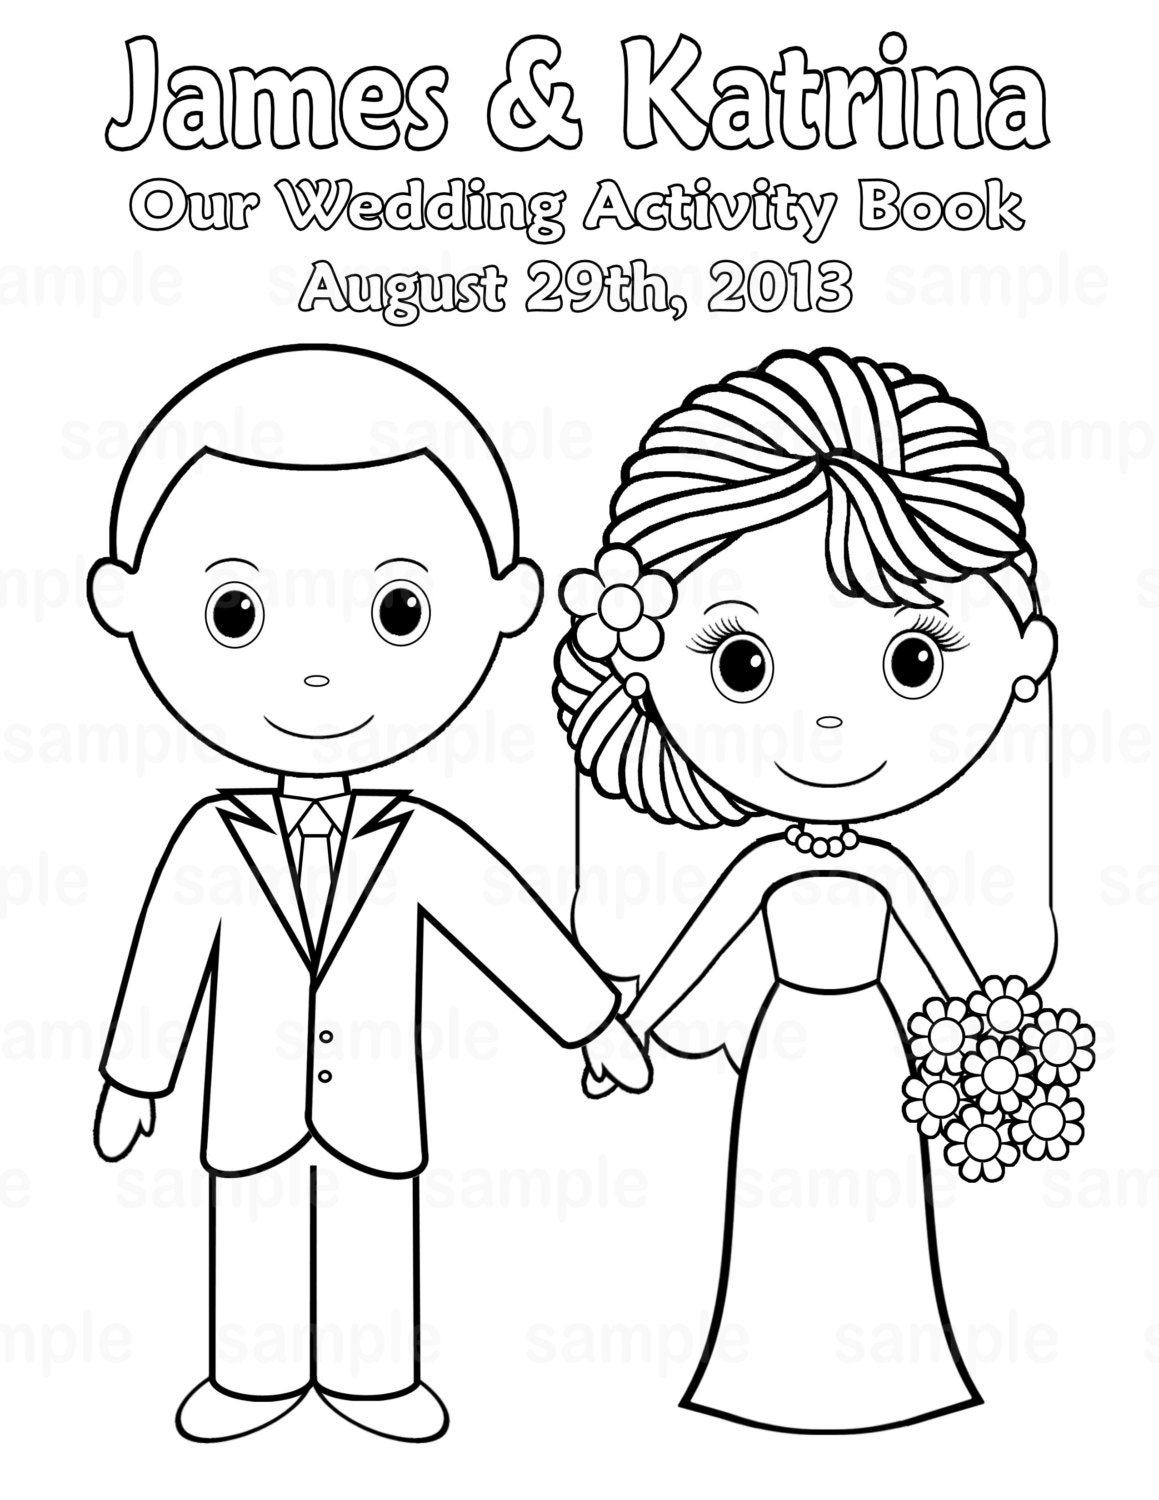 Printable personalized wedding coloring activity by for Activity coloring pages